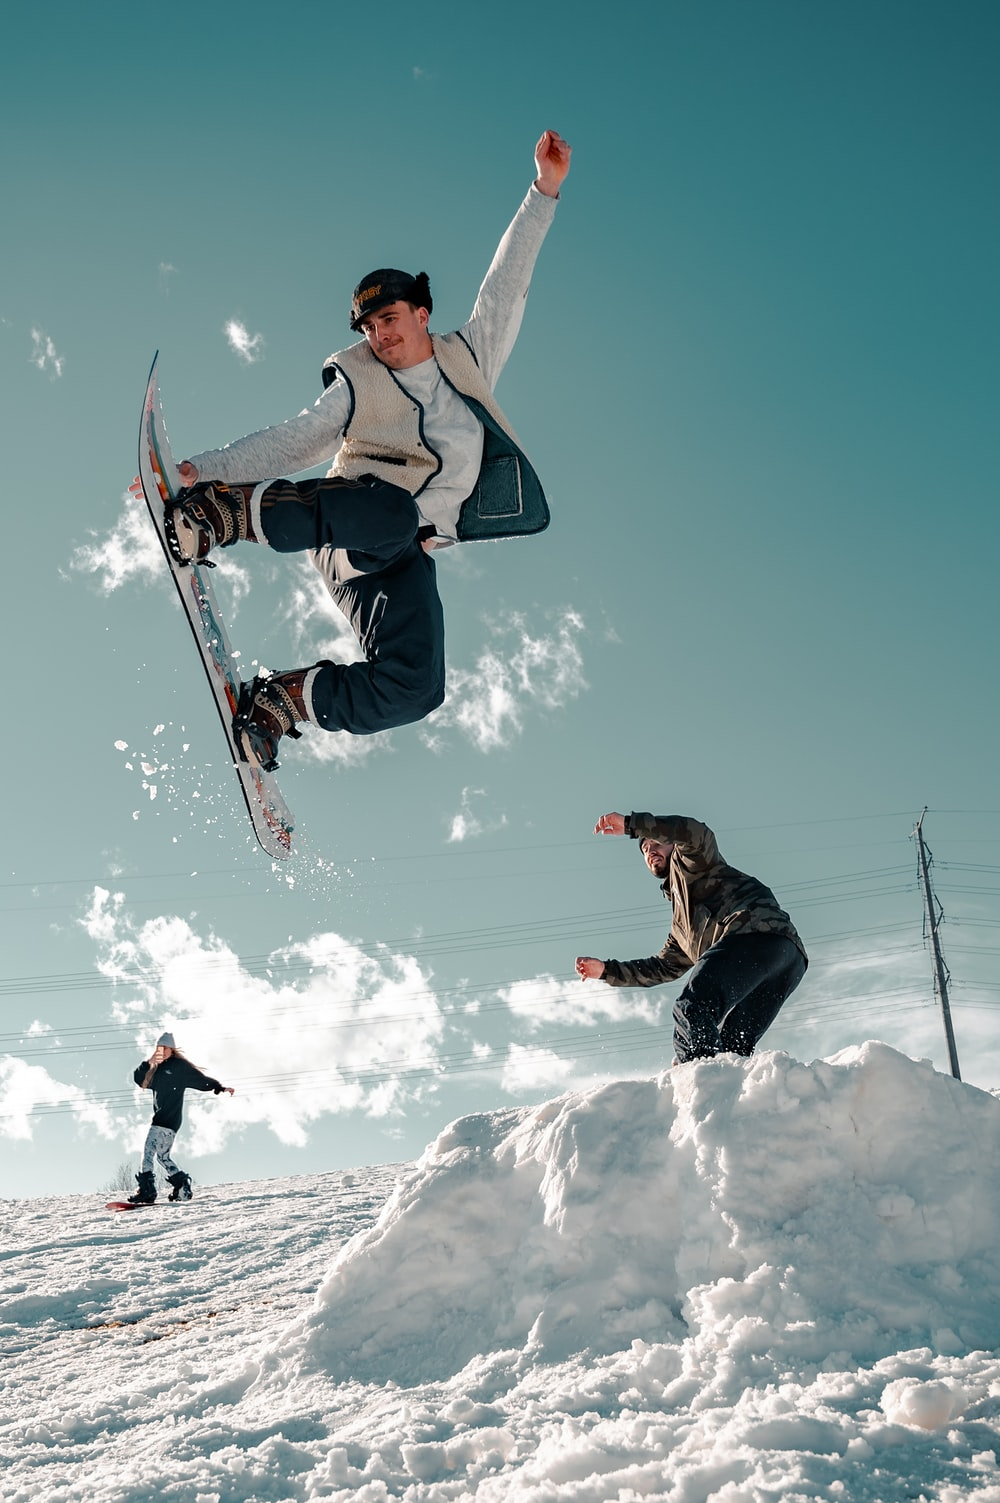 man in black jacket and blue denim jeans riding snowboard during daytime